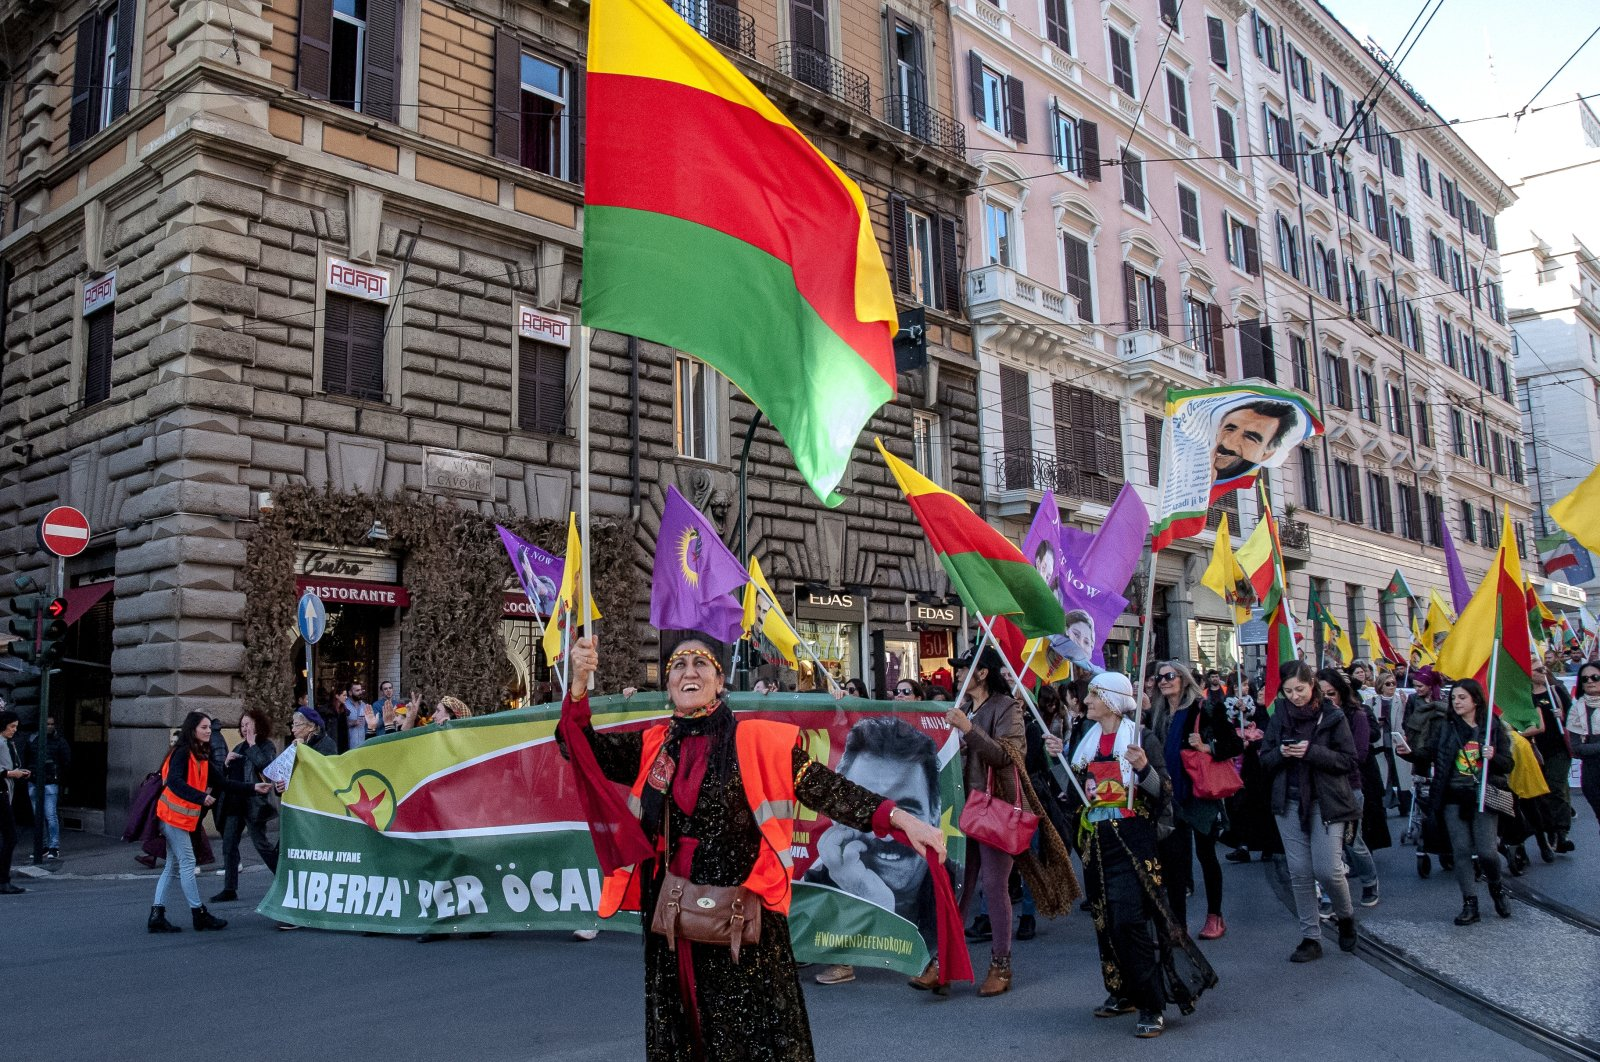 A pro-PKK demonstration for the release of the terrorist organization's leader Abdullah Öcalan, in Rome, Italy, Feb. 15, 2020 (Getty Images)